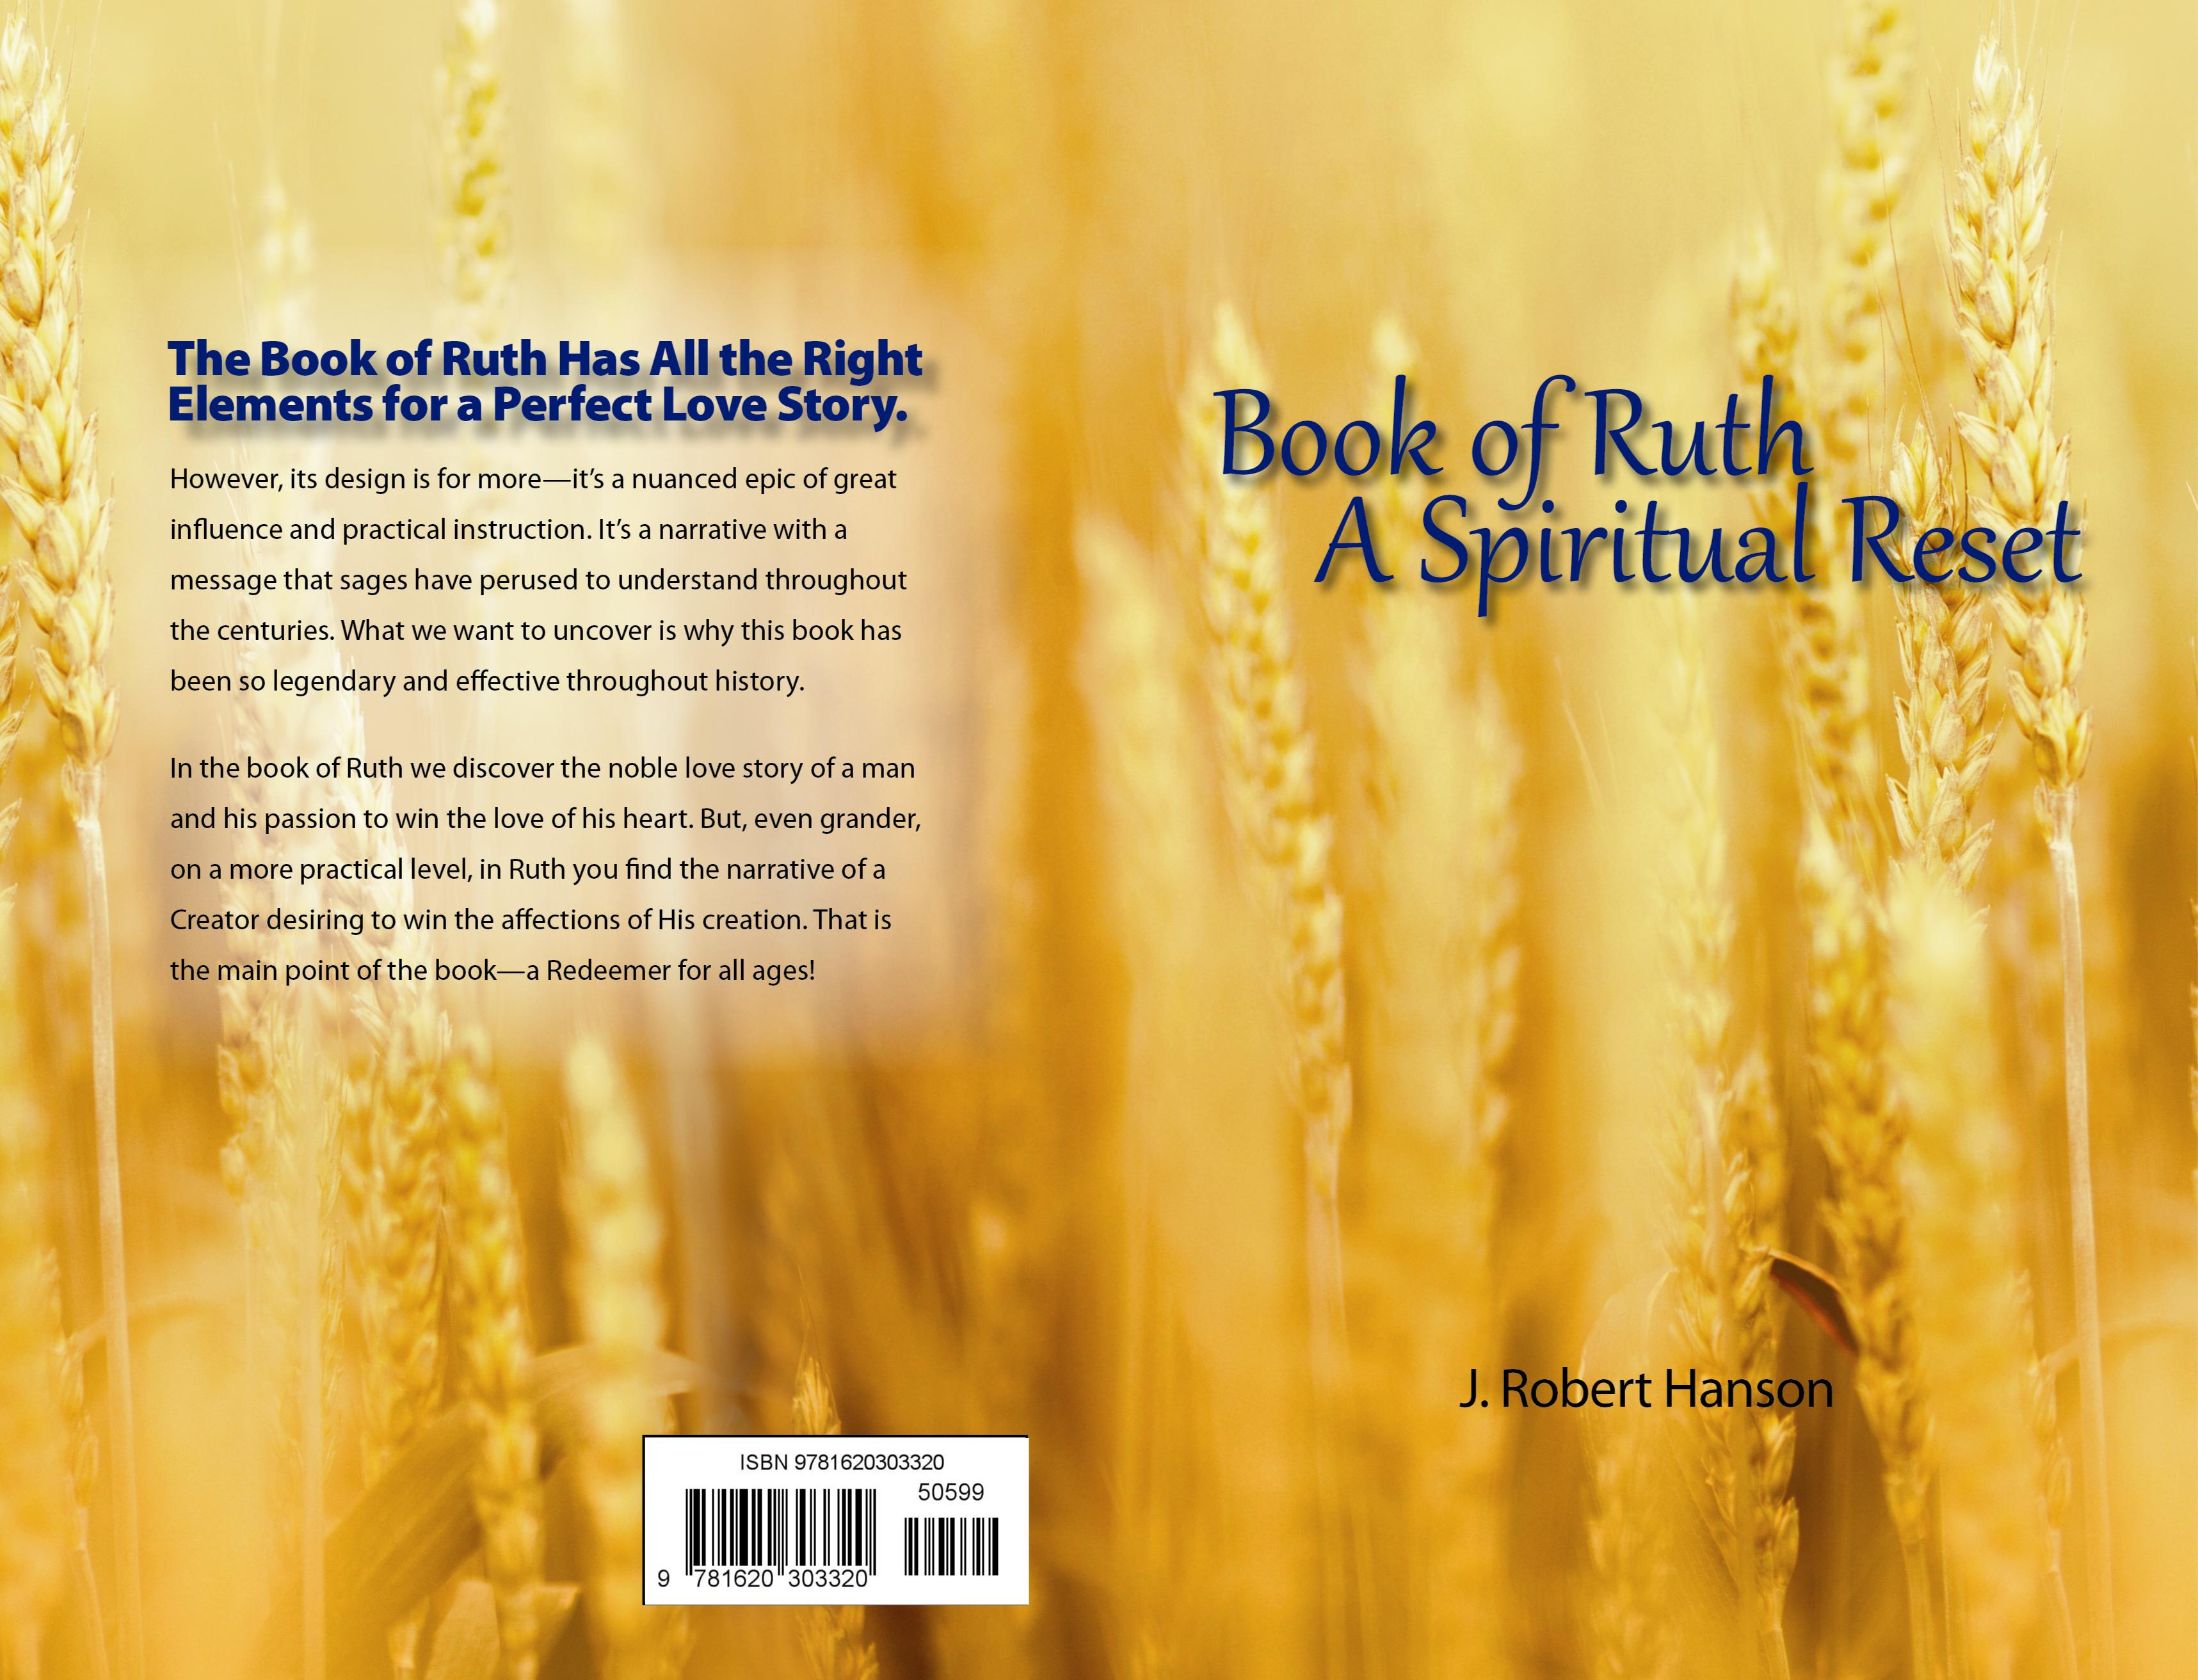 Book of Ruth—A Spiritual Reset cover image